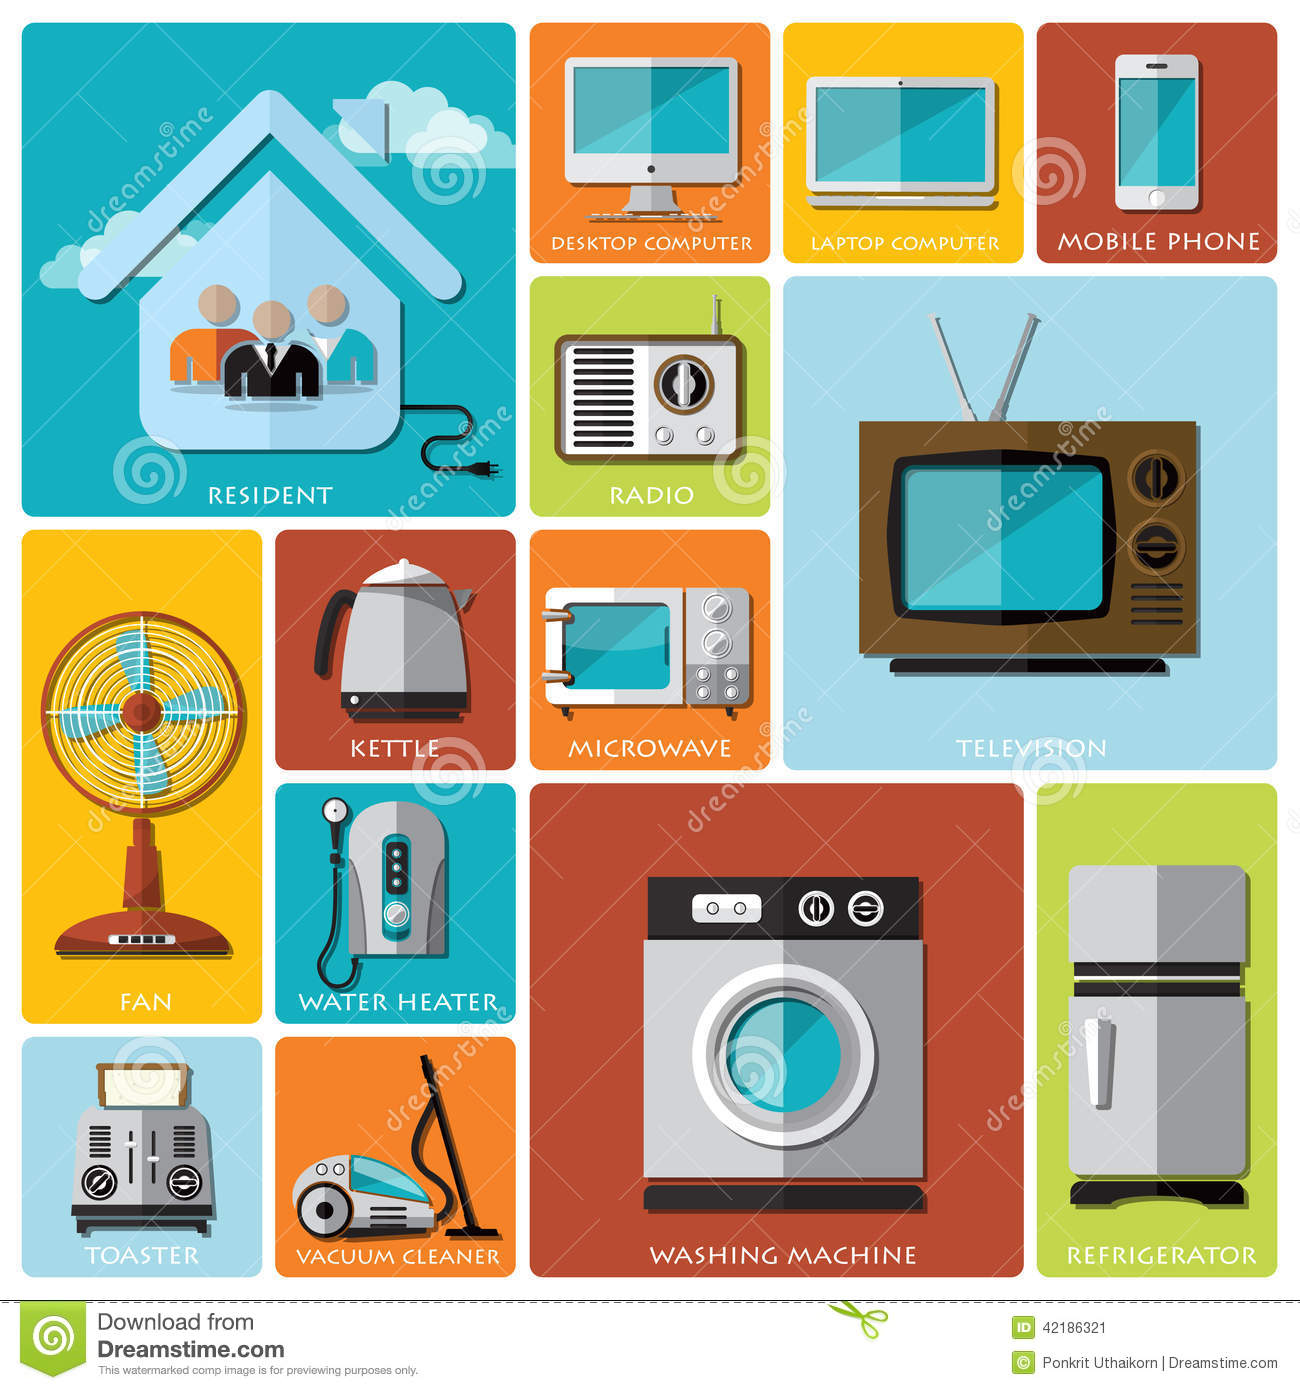 Electronic Timing Devices : Electronic machine and house flat icon set stock vector